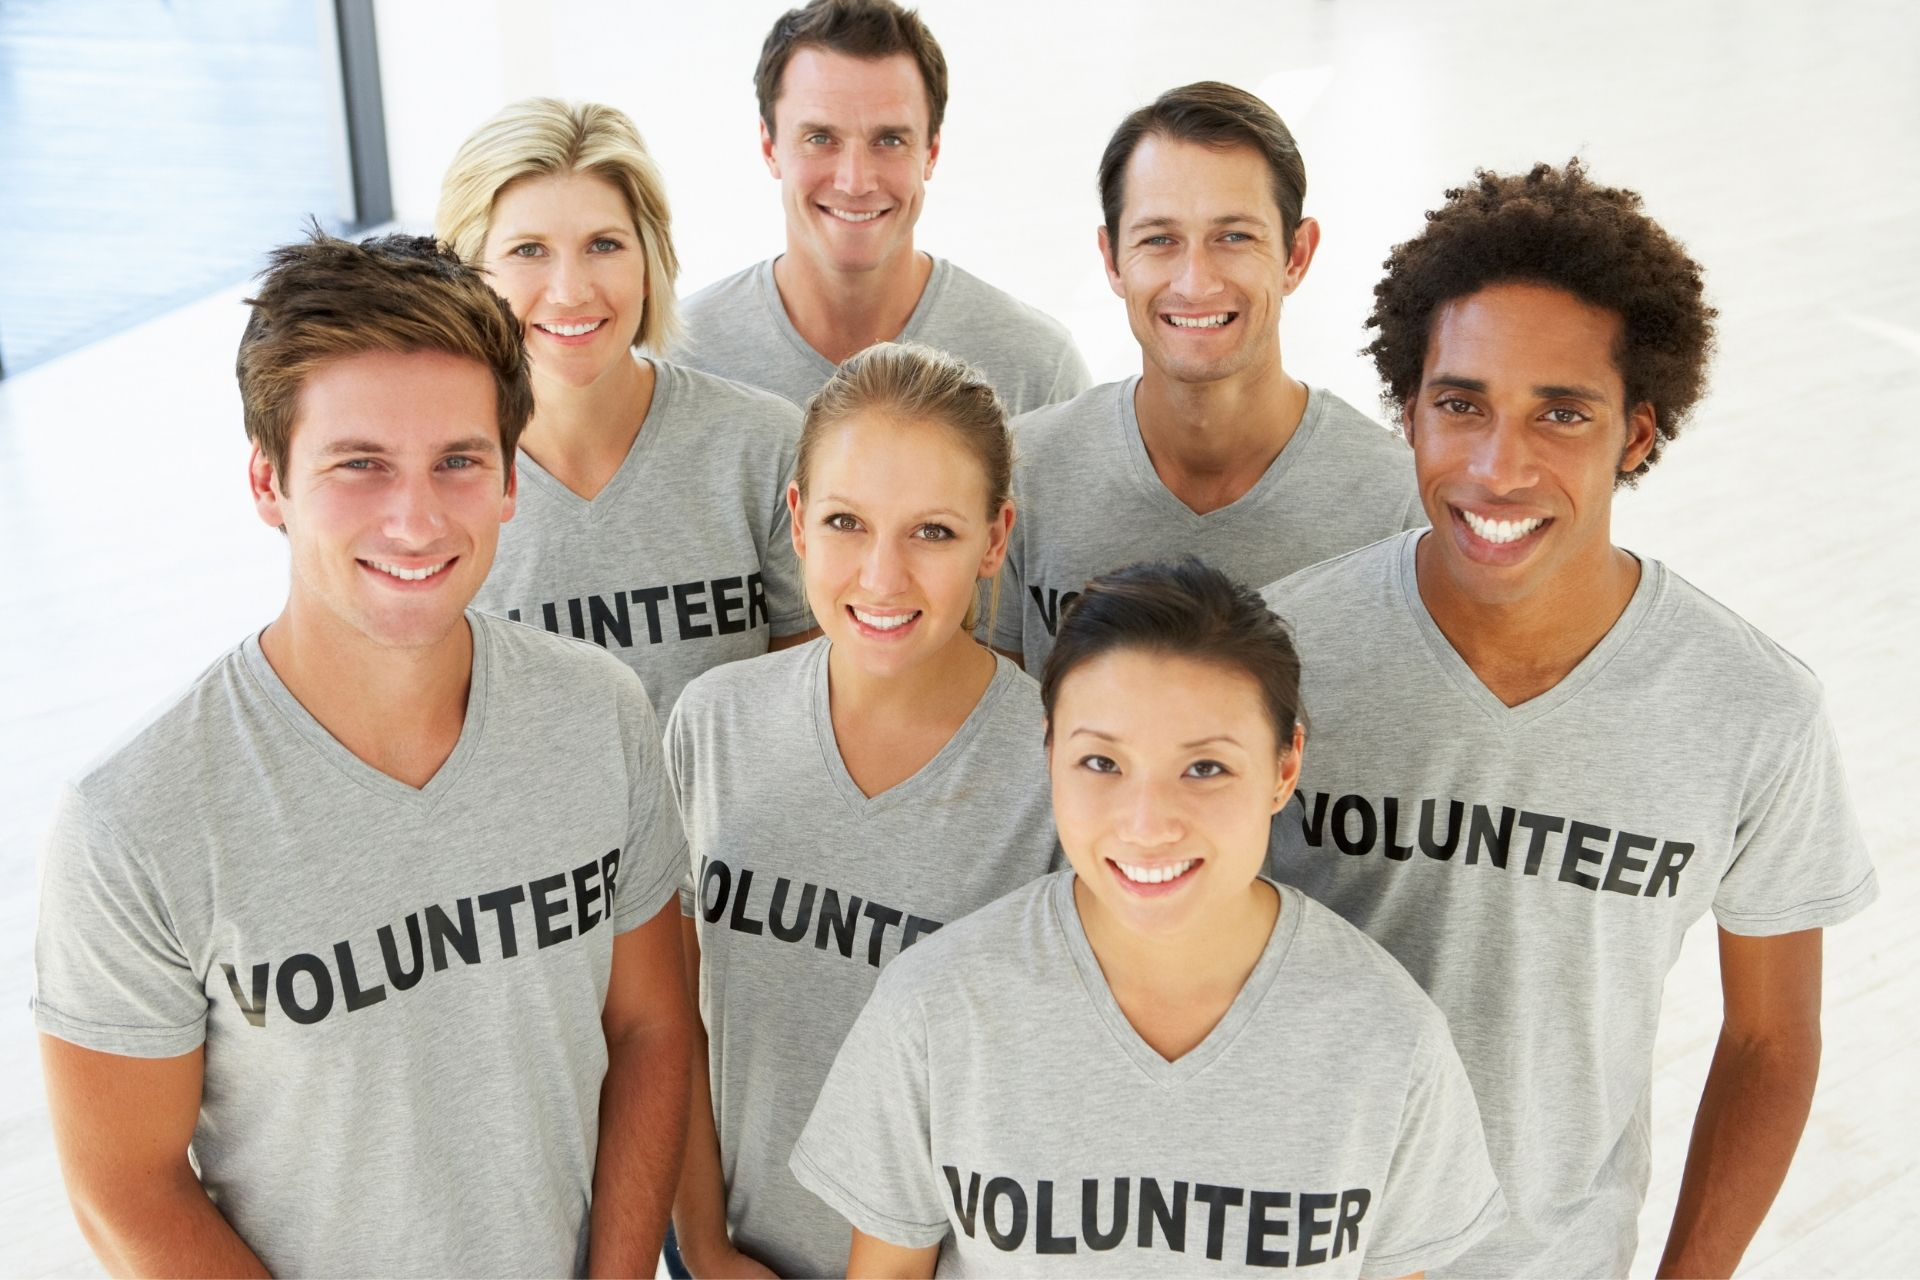 Canva Graphic showing group of Volunteers